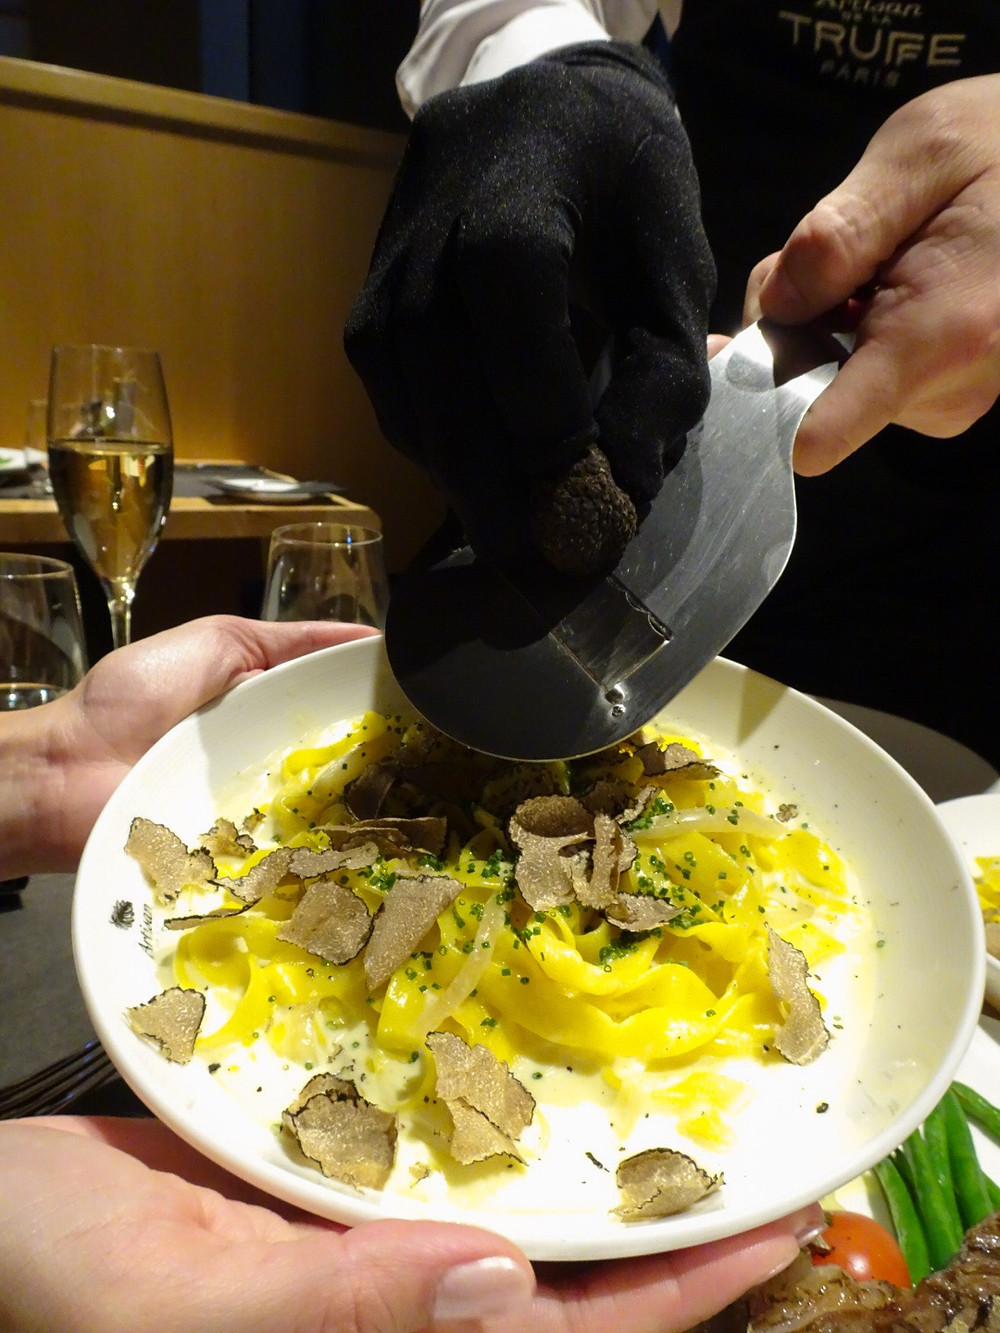 Food at Artisan de la Truffe restaurant in Hong Kong